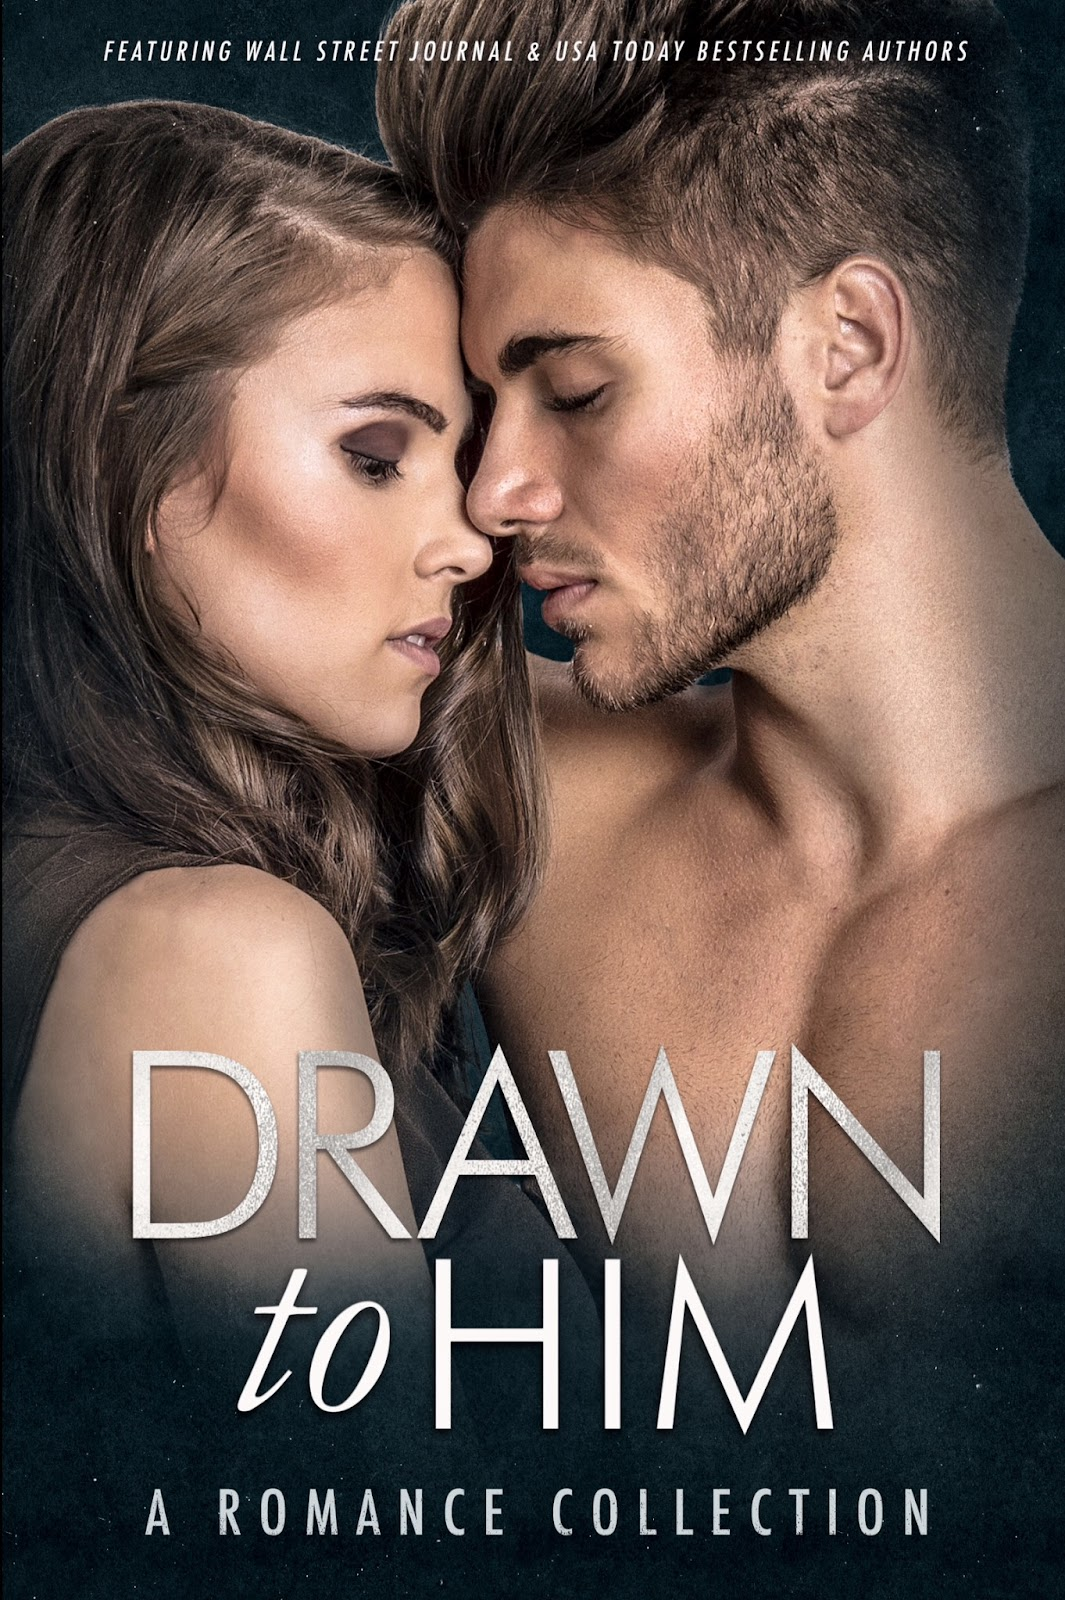 [Review] DRAWN TO HIM: A ROMANCE COLLECTION @KristiWebster @klkreig @AZavarellibooks @jadewestauthor @MNeverAuthor @lj_shen @willowwintersbb  @authorstarling #excerpt